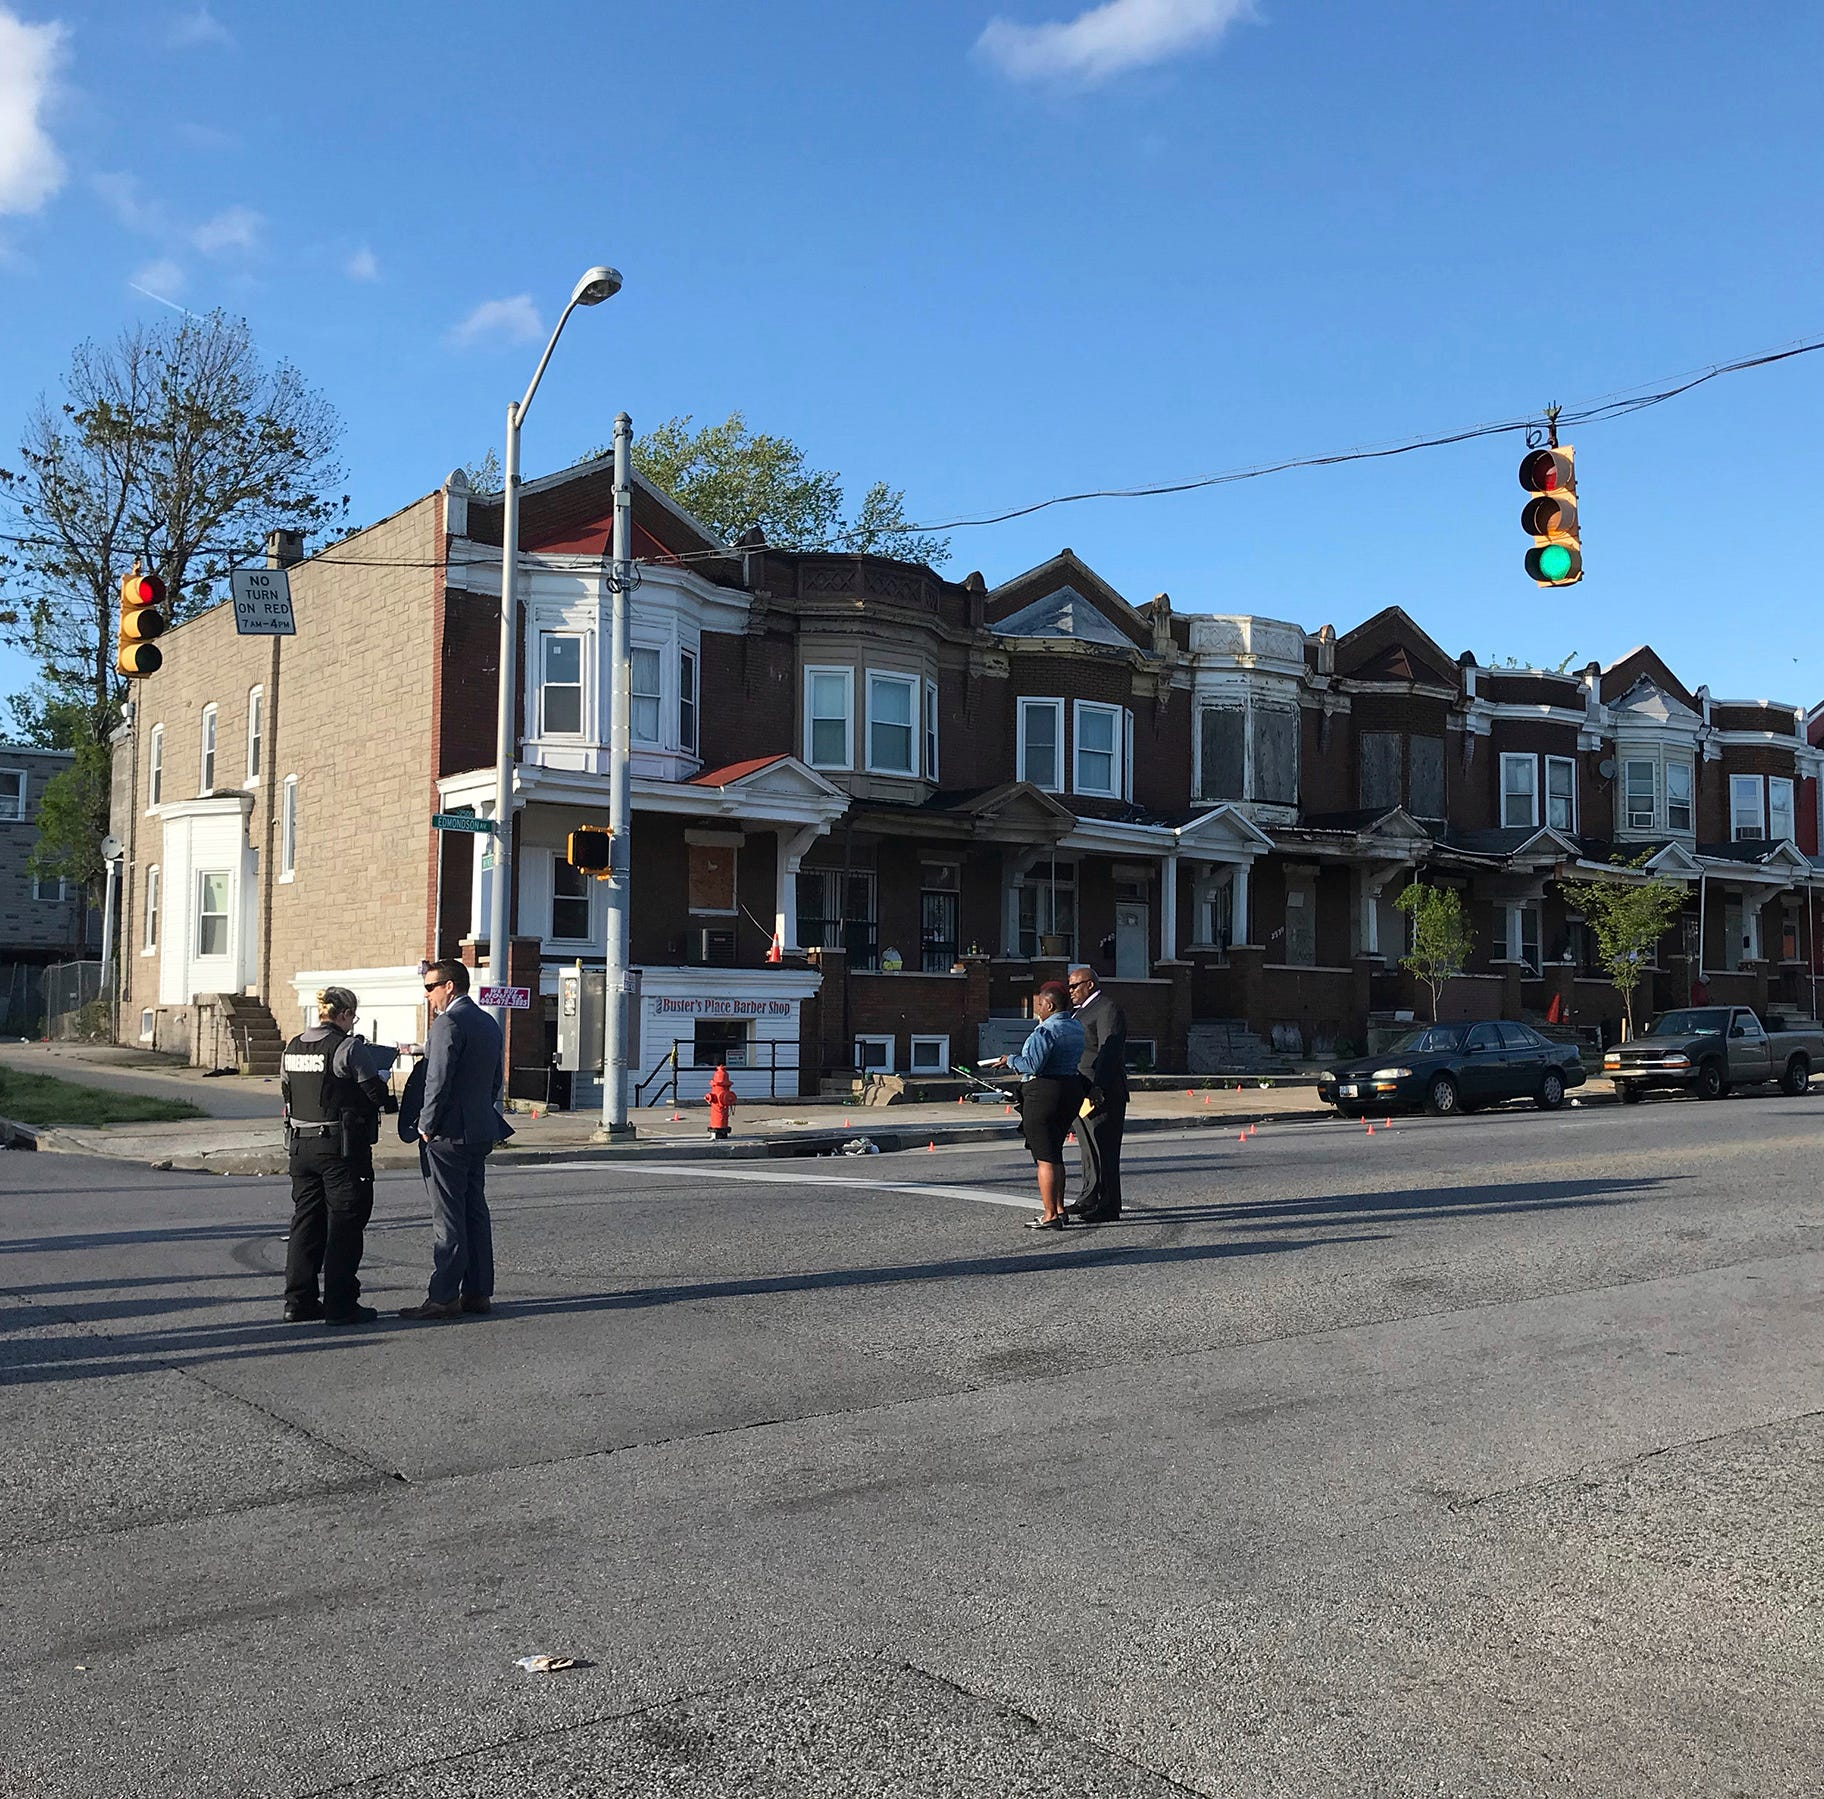 Gunman opened fire in Baltimore, killing one person and injuring  6 others, police say